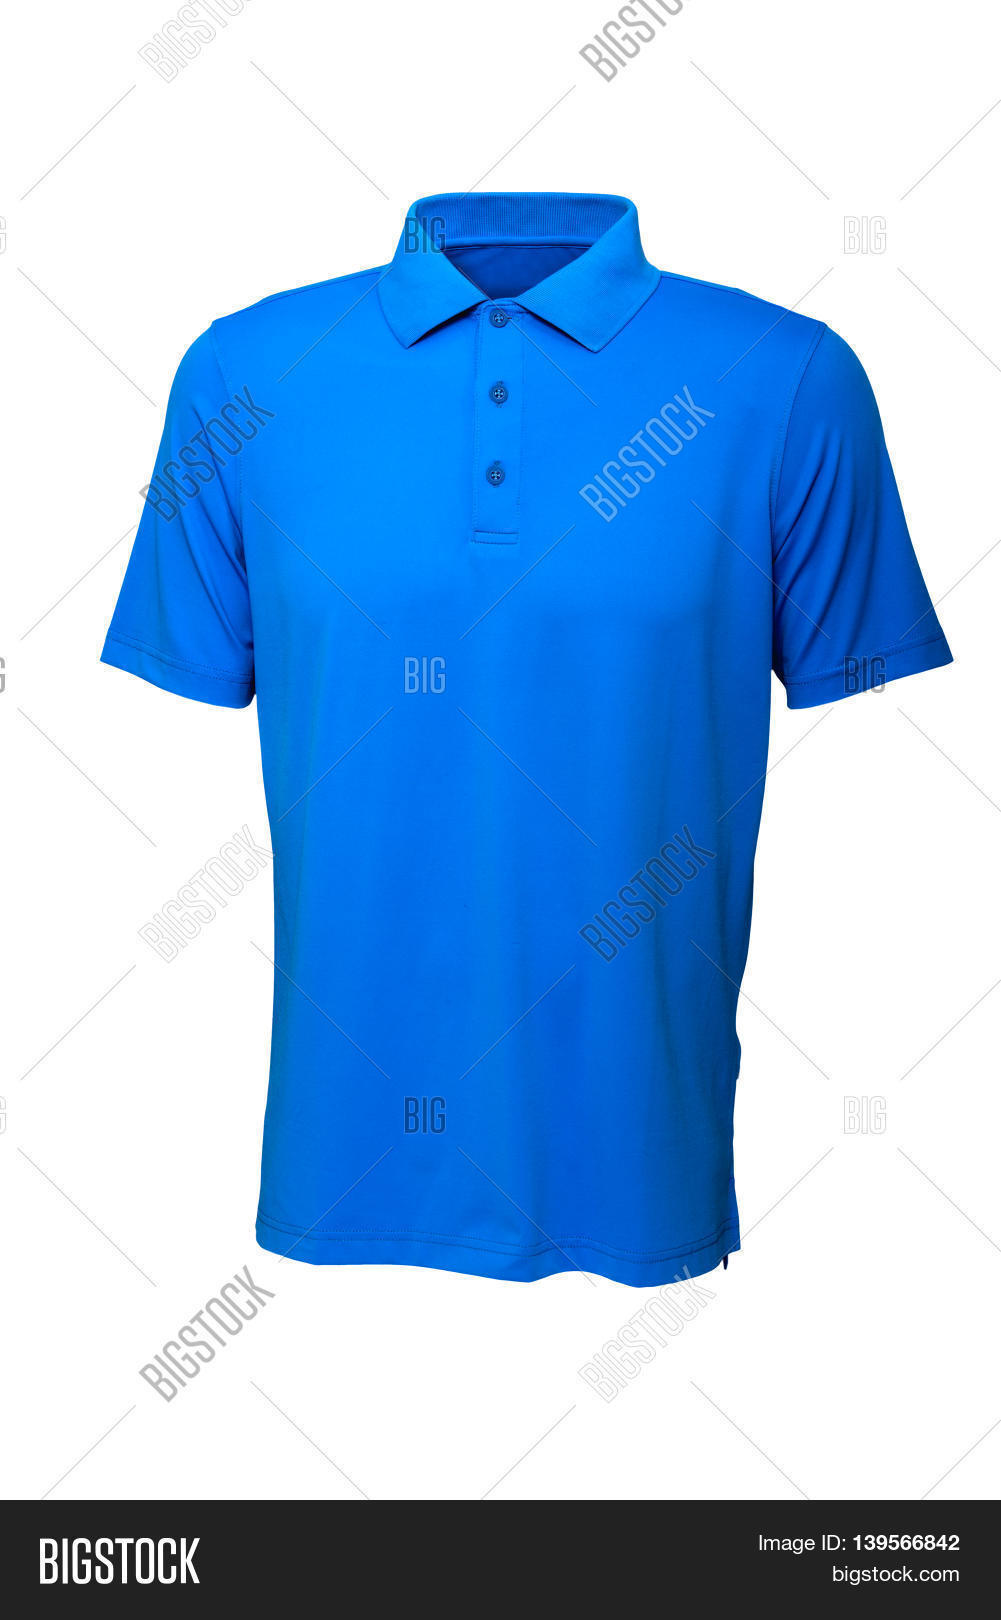 e9ca5b174 Golf tee shirt blue color for man or woman on white background